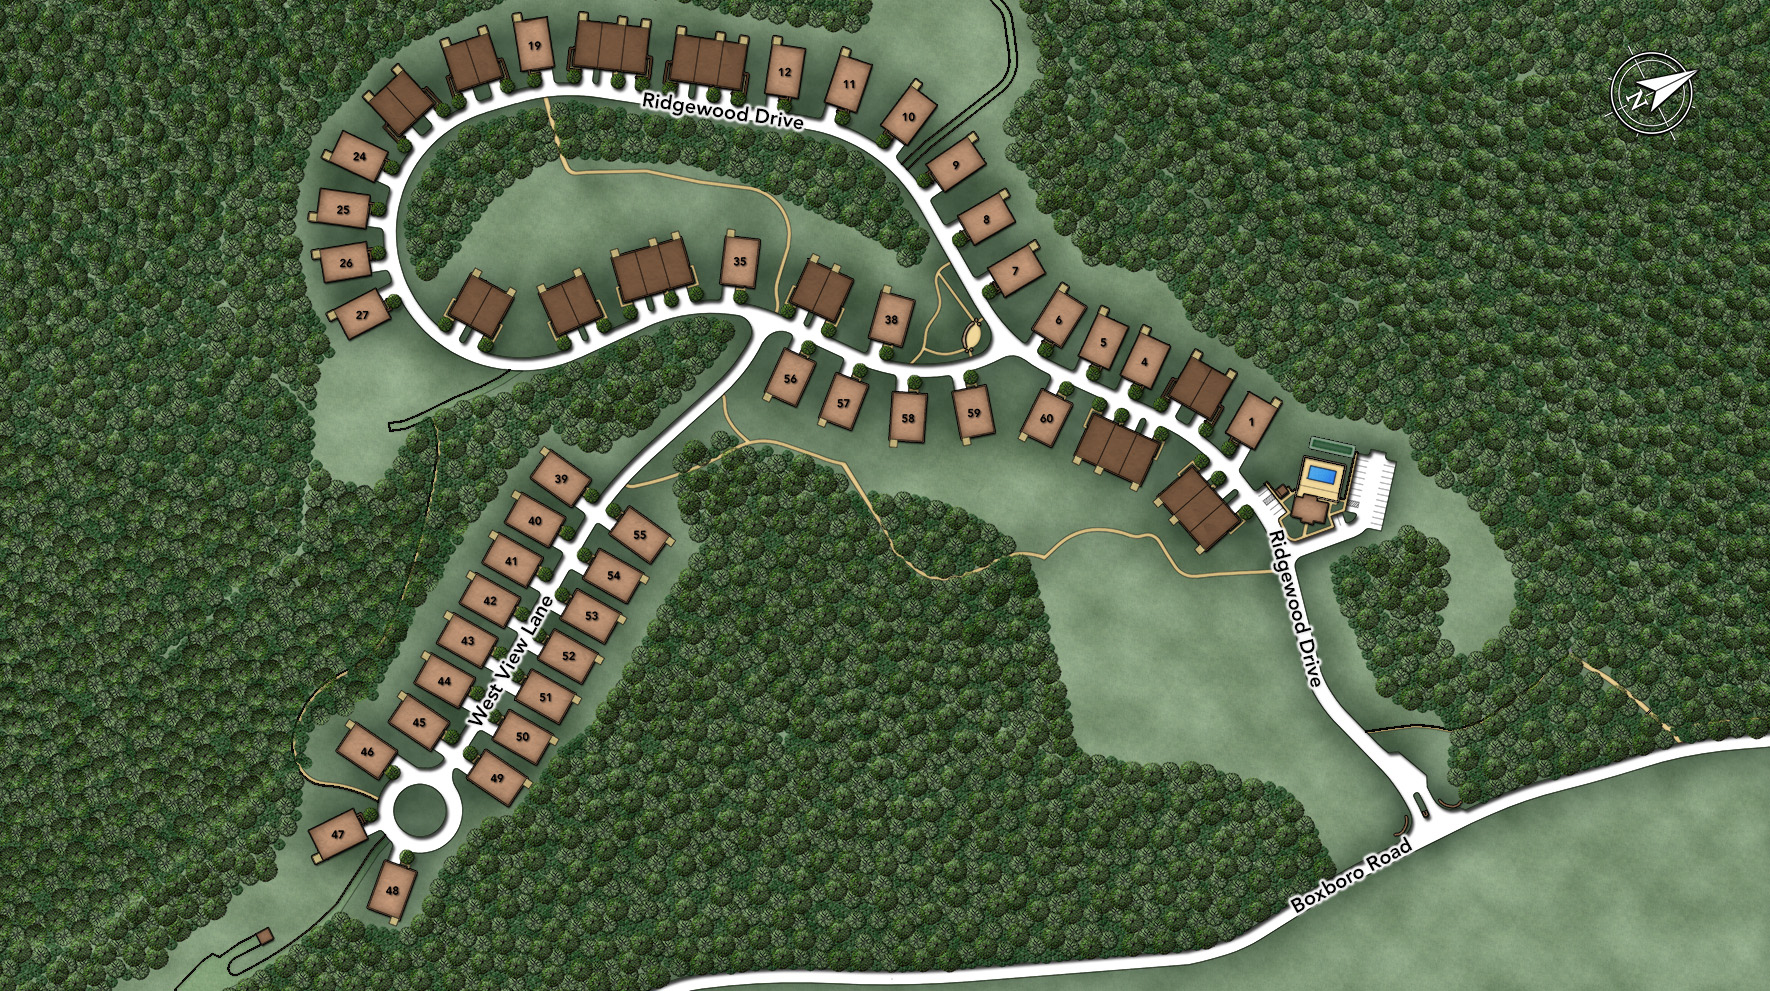 Regency at Stow - The Villas Site Plan